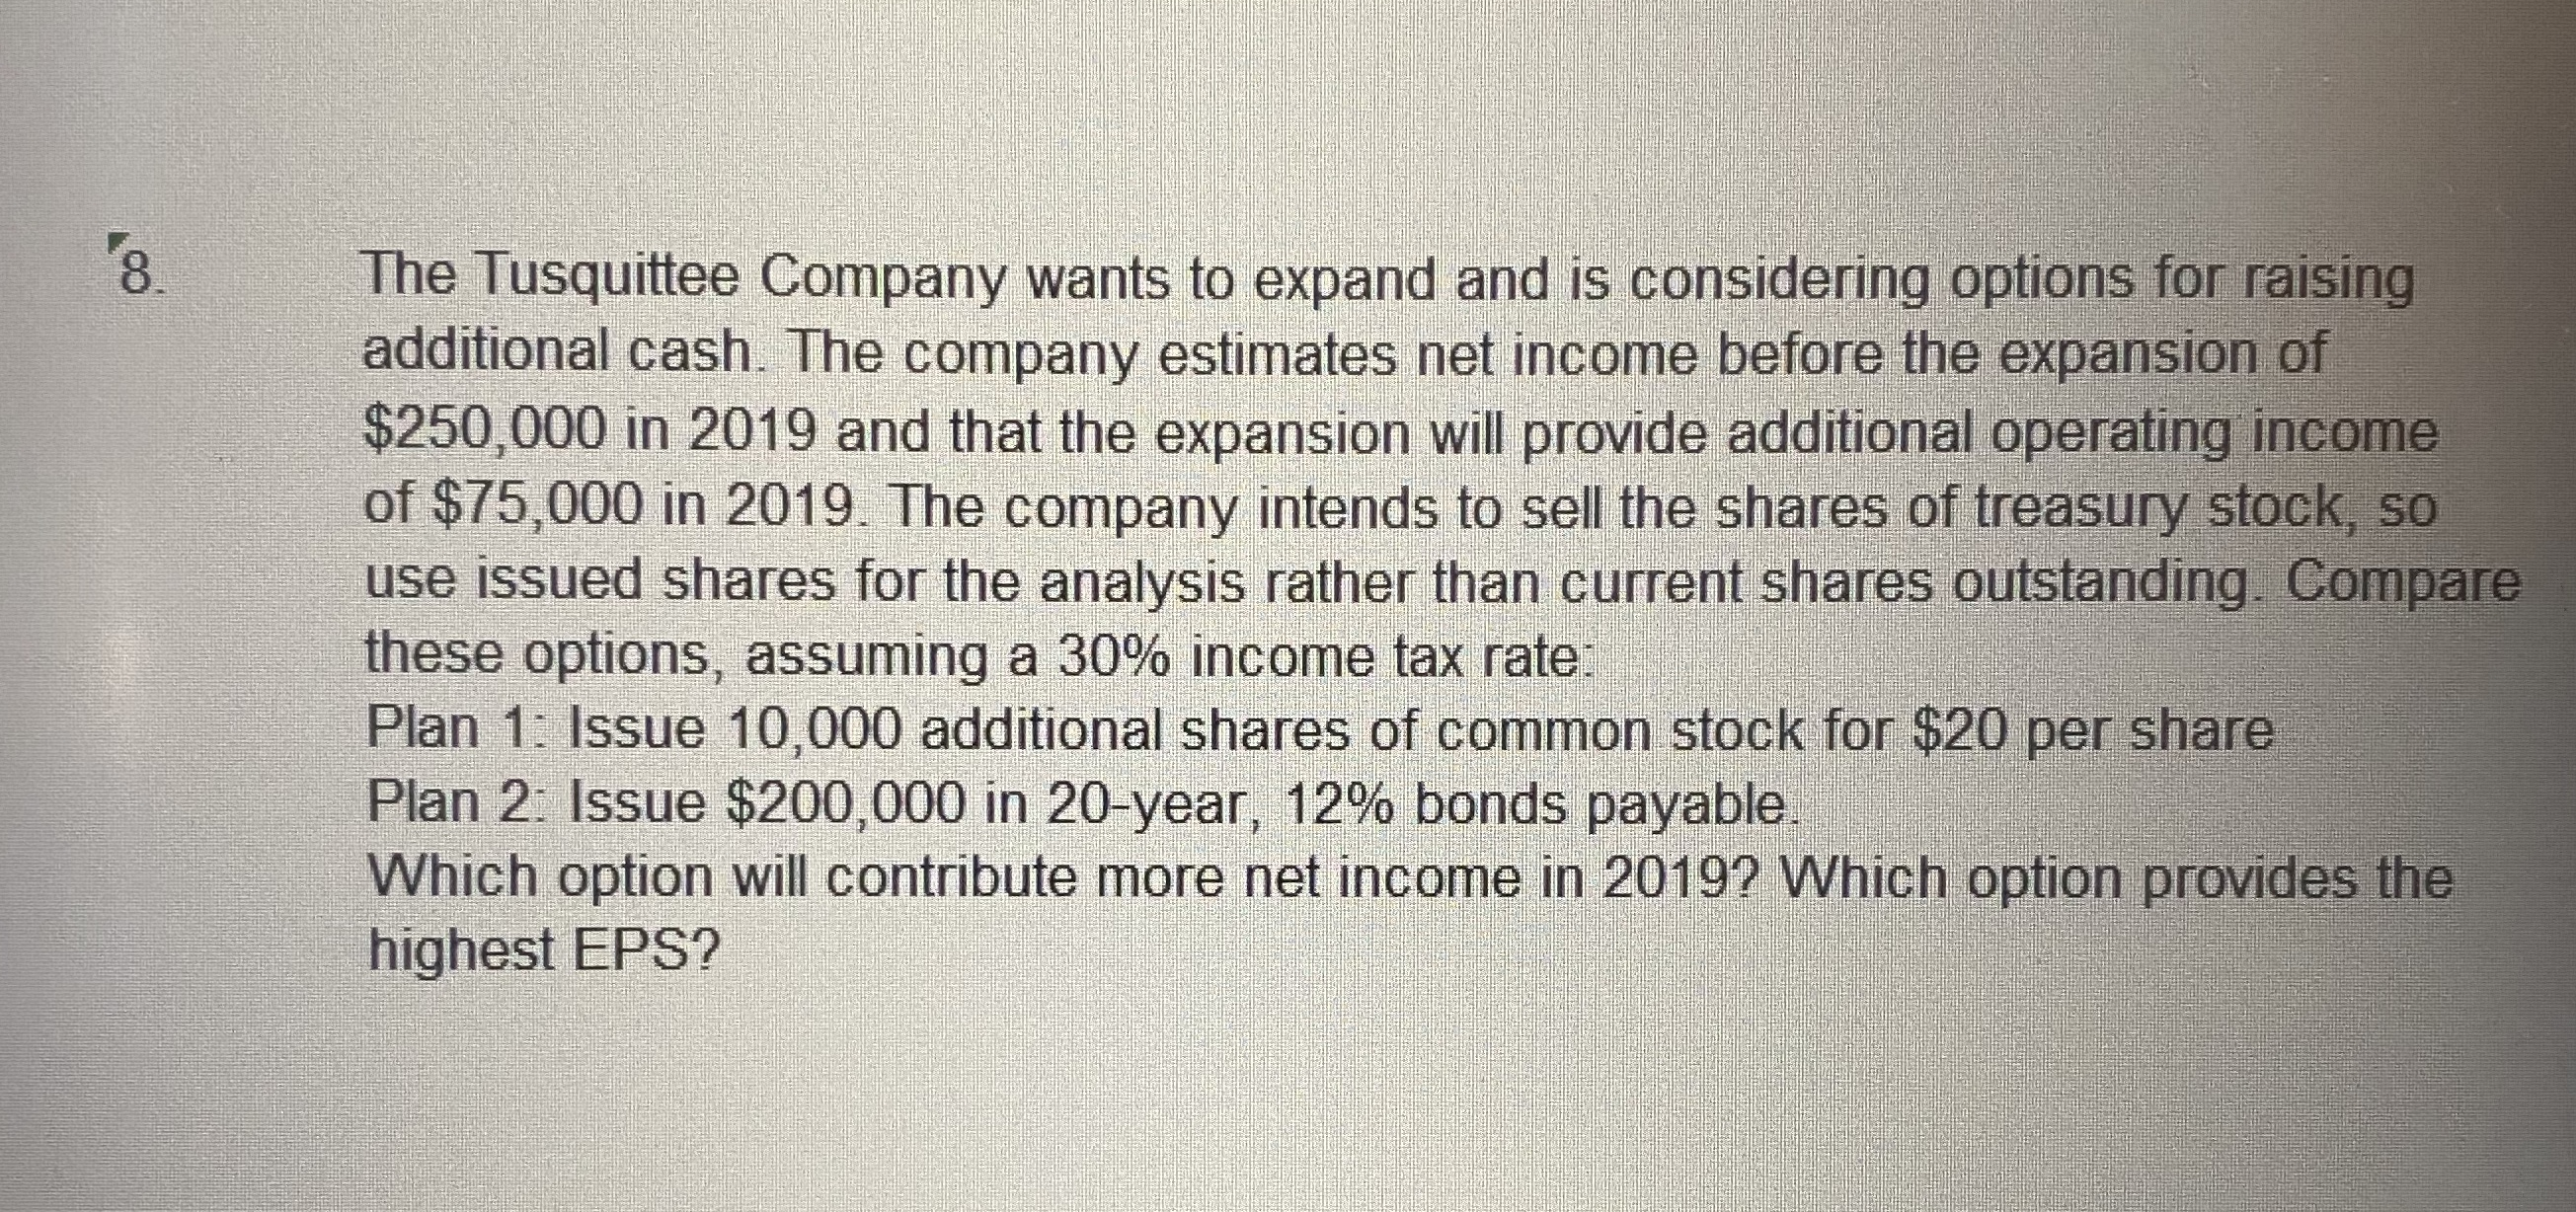 8. The Tusquittee Company wants to expand and is considering options for raising additional cash. The company estimates net income before the expansion of $250,000 in 2019 and that the expansion will provide additional operating income of $75,000 in 2019. The company intends to sell the shares of treasury stock, so use issued shares for the analysis rather than current shares outstanding. Compare these options, assuming a 30% income tax rate: Plan 1: Issue 10,000 additional shares of common stock for $20 per share Plan 2: Issue $200,000 in 20-year, 12% bonds payable. Which option will contribute more net income in 2019? Which option provides the highest EPS?